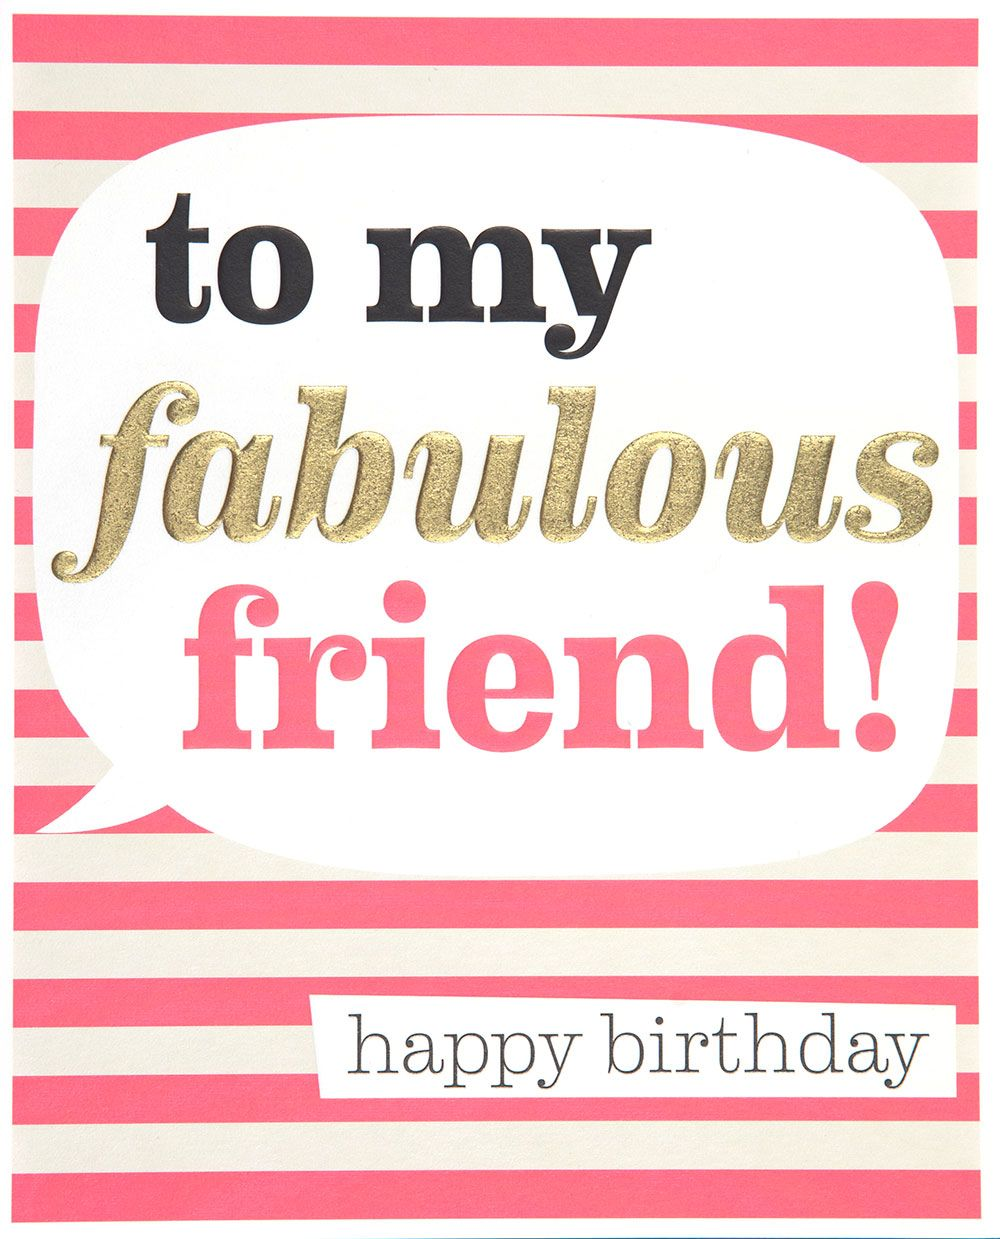 Pin By Kacie Hillstrom On Friendship Greeting Card Companies Happy Birthday Cards Happy Birthday To You